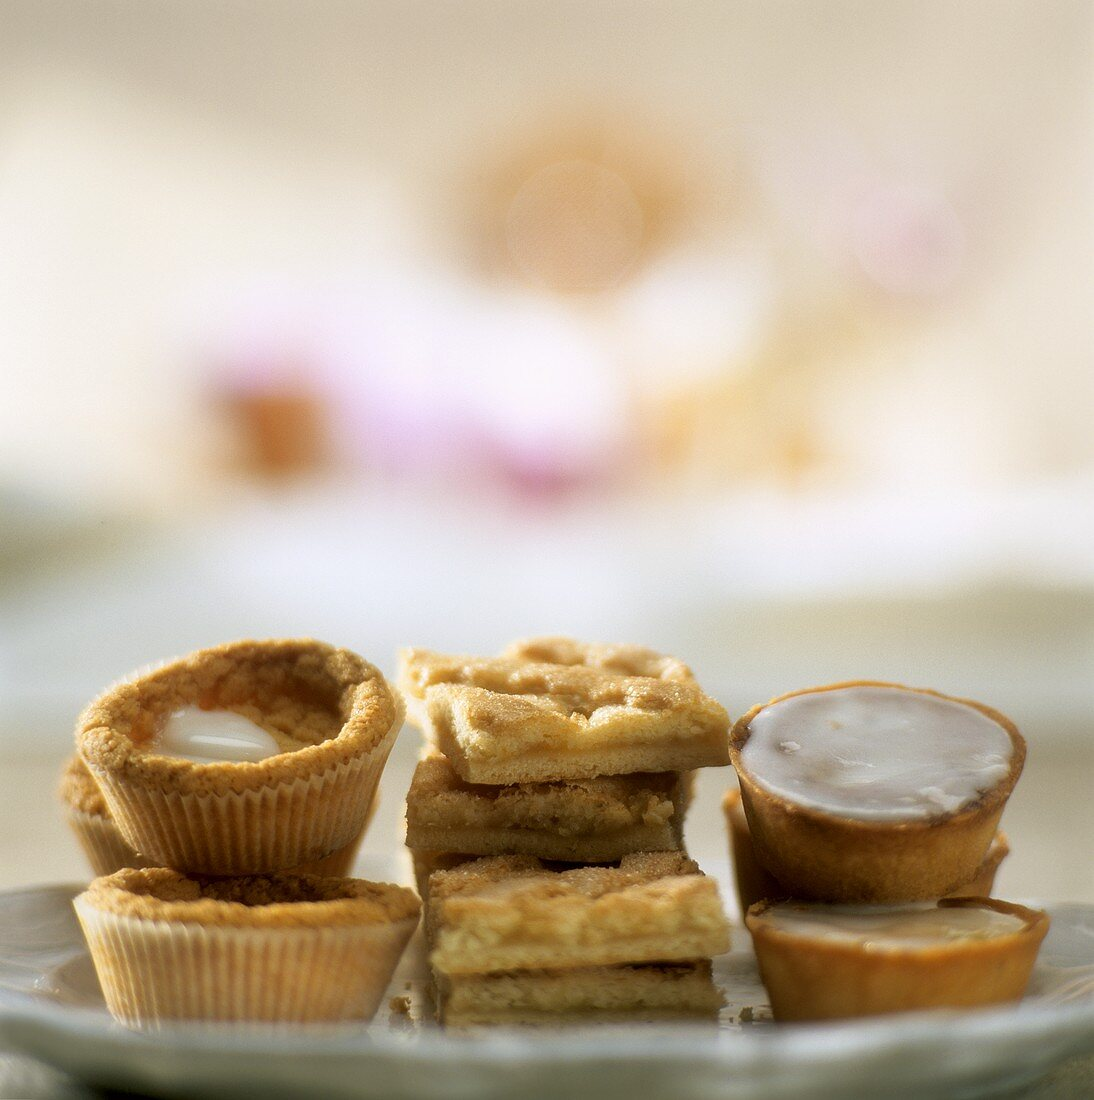 Small cakes with apple